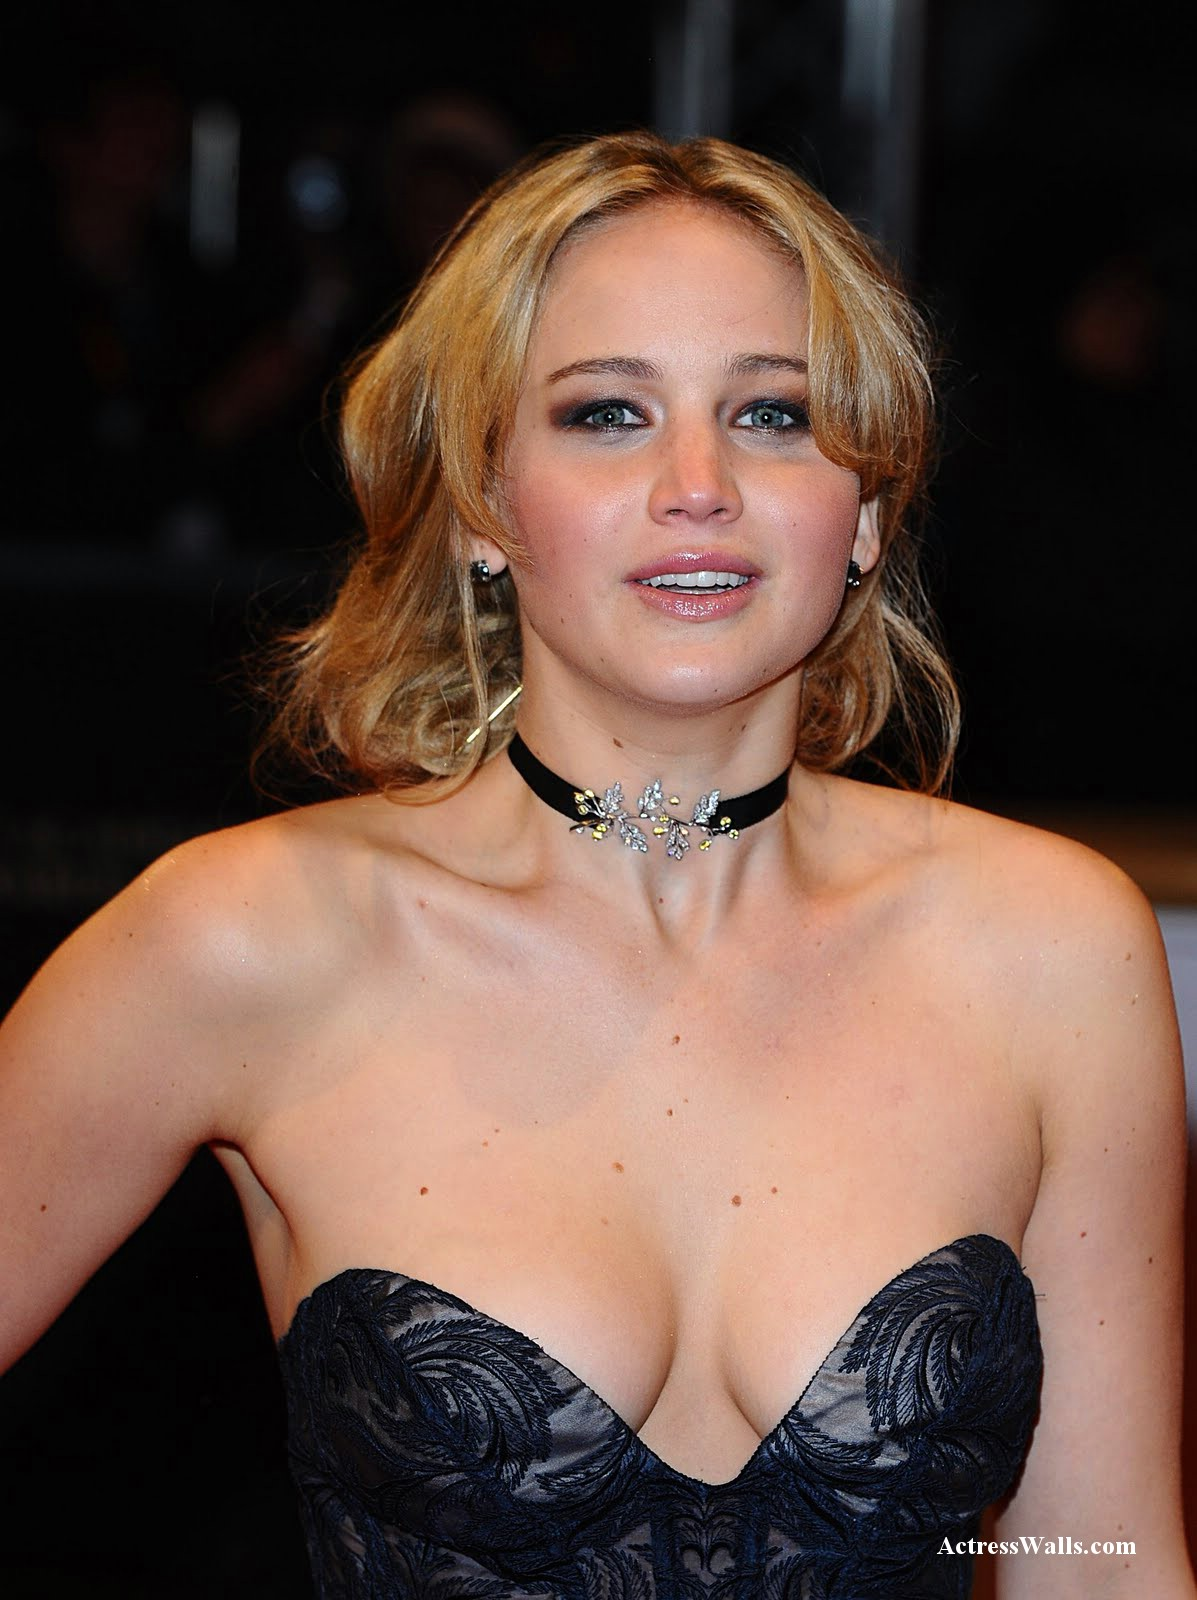 Jennifer Lawrence Makeup Tutorial: Jennifer Lawrence Hot Wallpapers